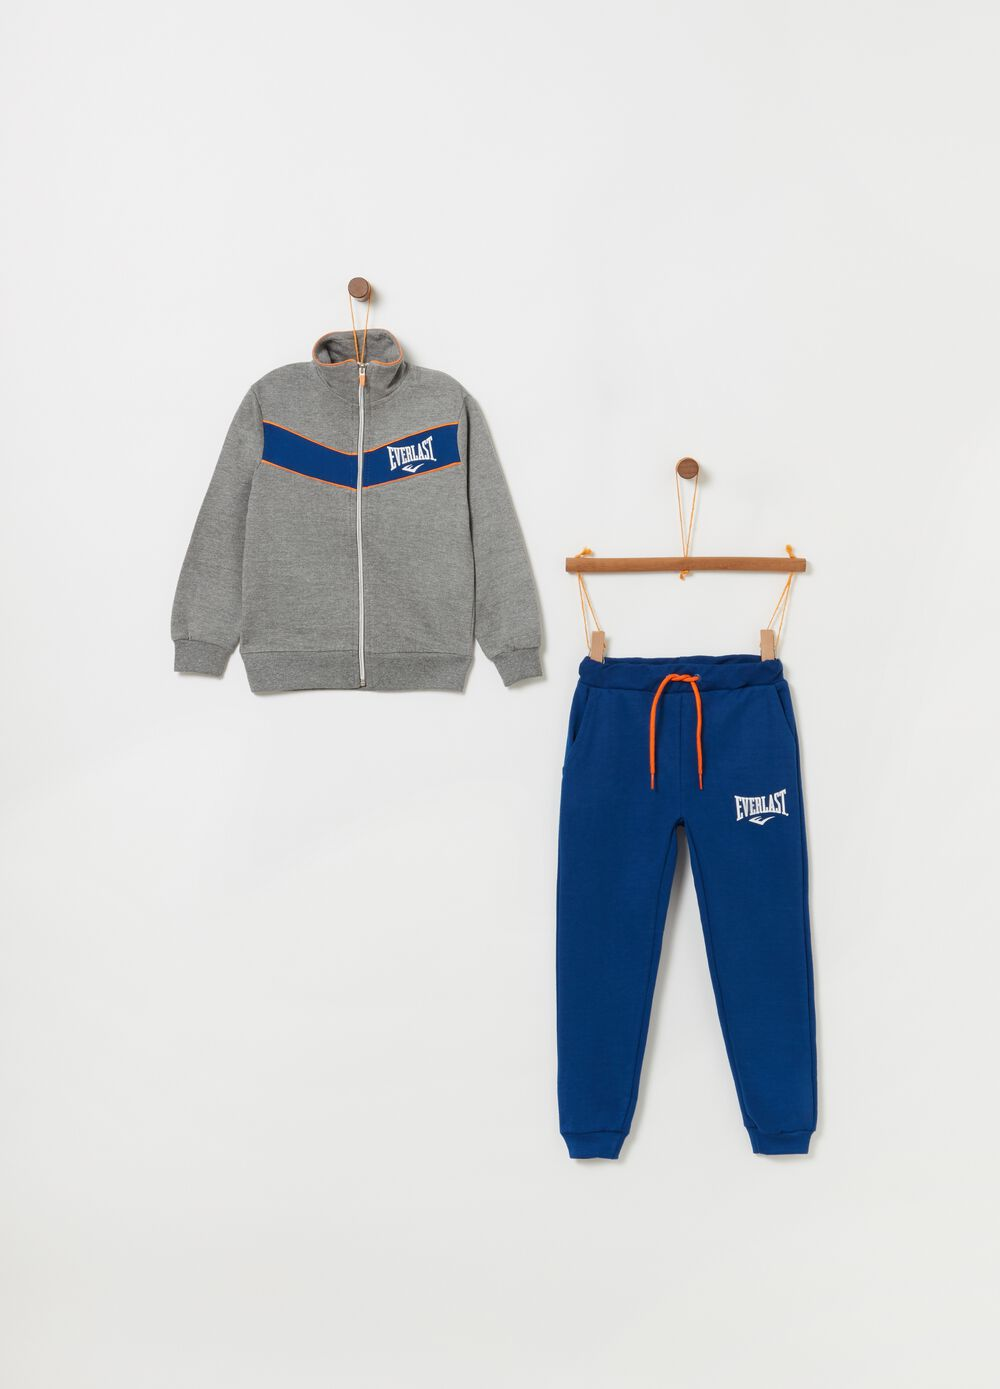 Everlast jogging set with top and trousers